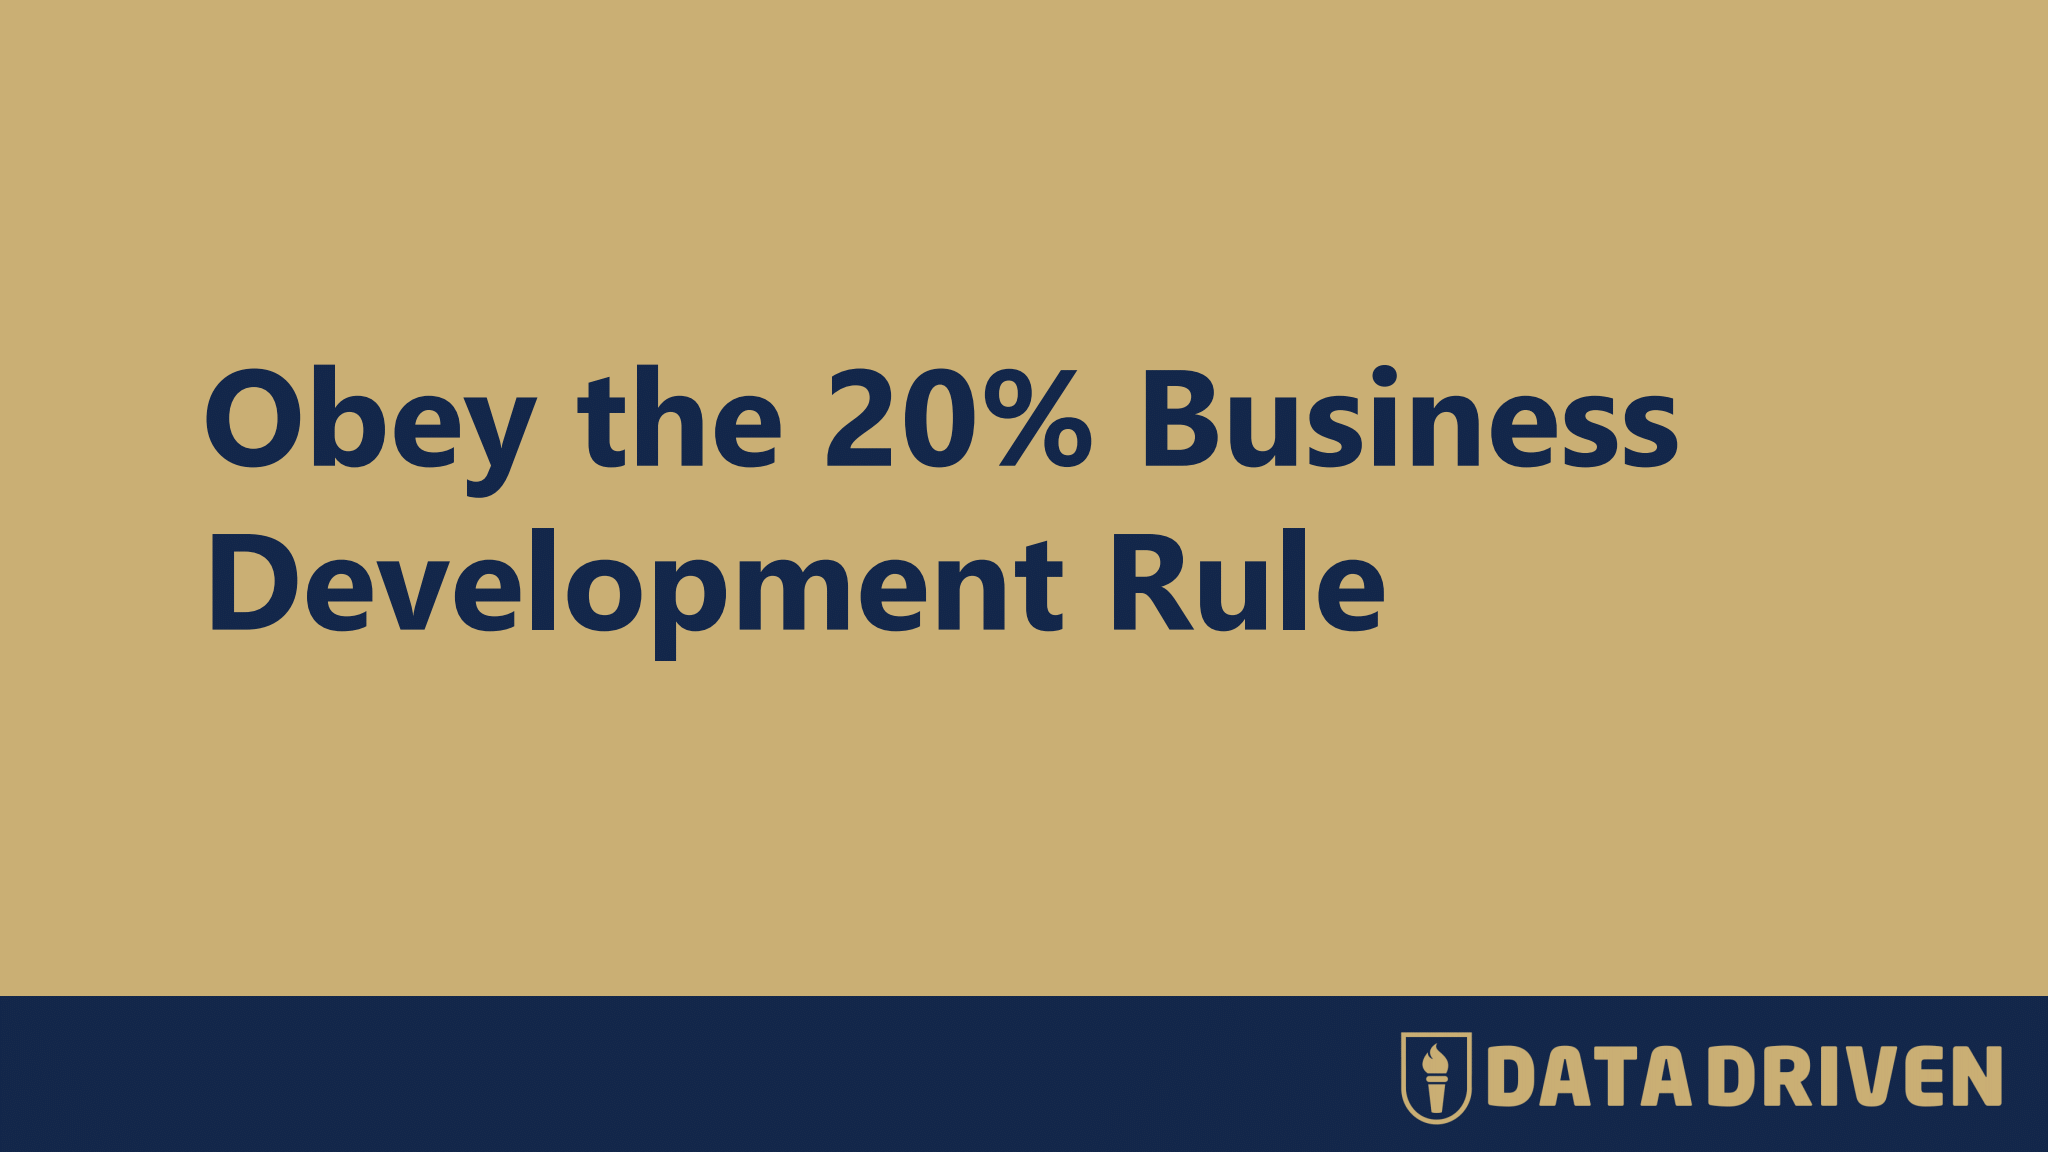 The 20% business development rule